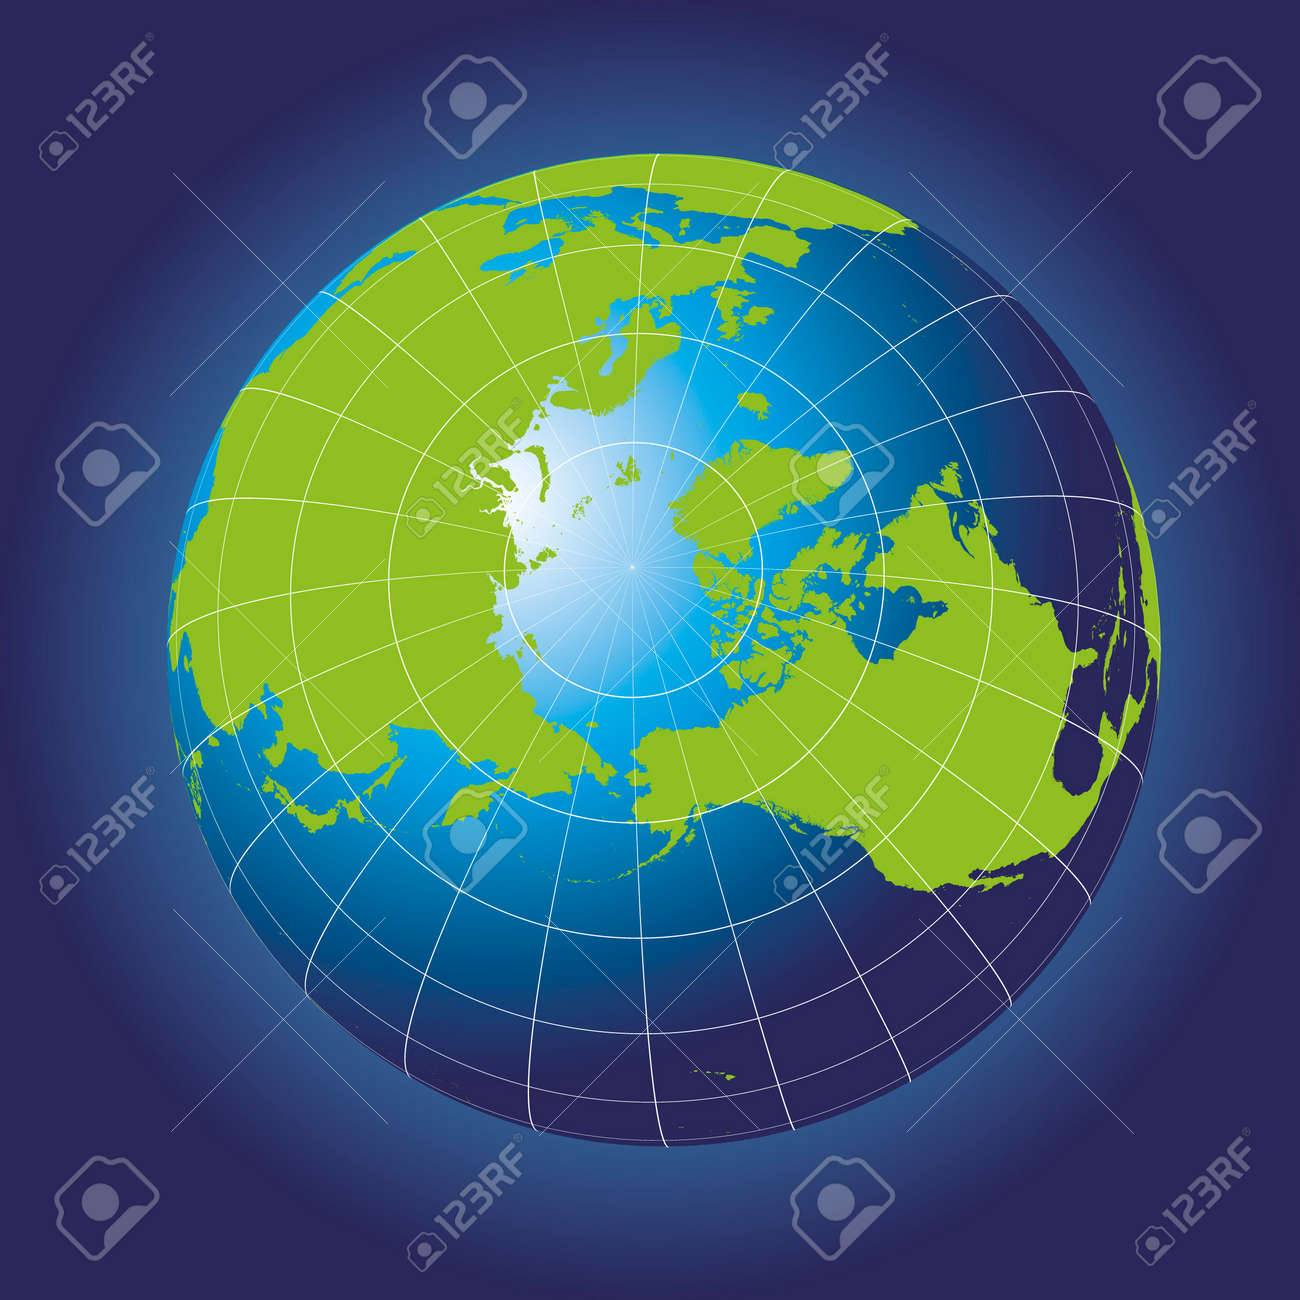 North pole map europe greenland asia america russia earth north pole map europe greenland asia america russia earth globe gumiabroncs Images